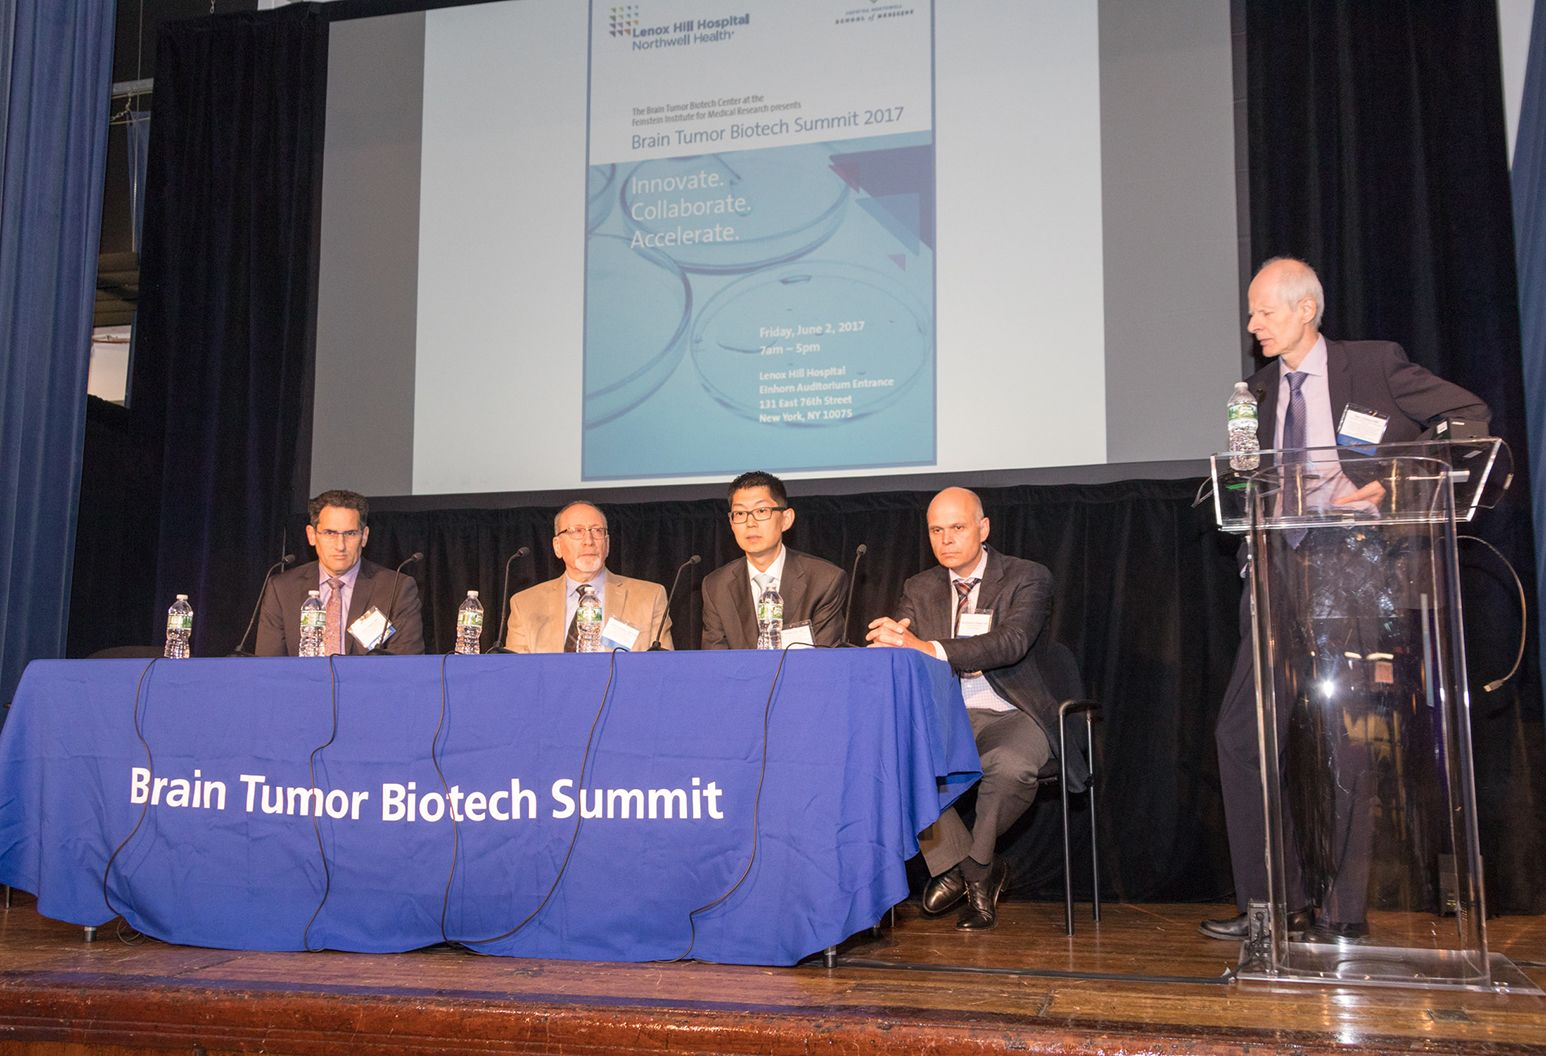 Panel of 5 professional men on stage at a conference